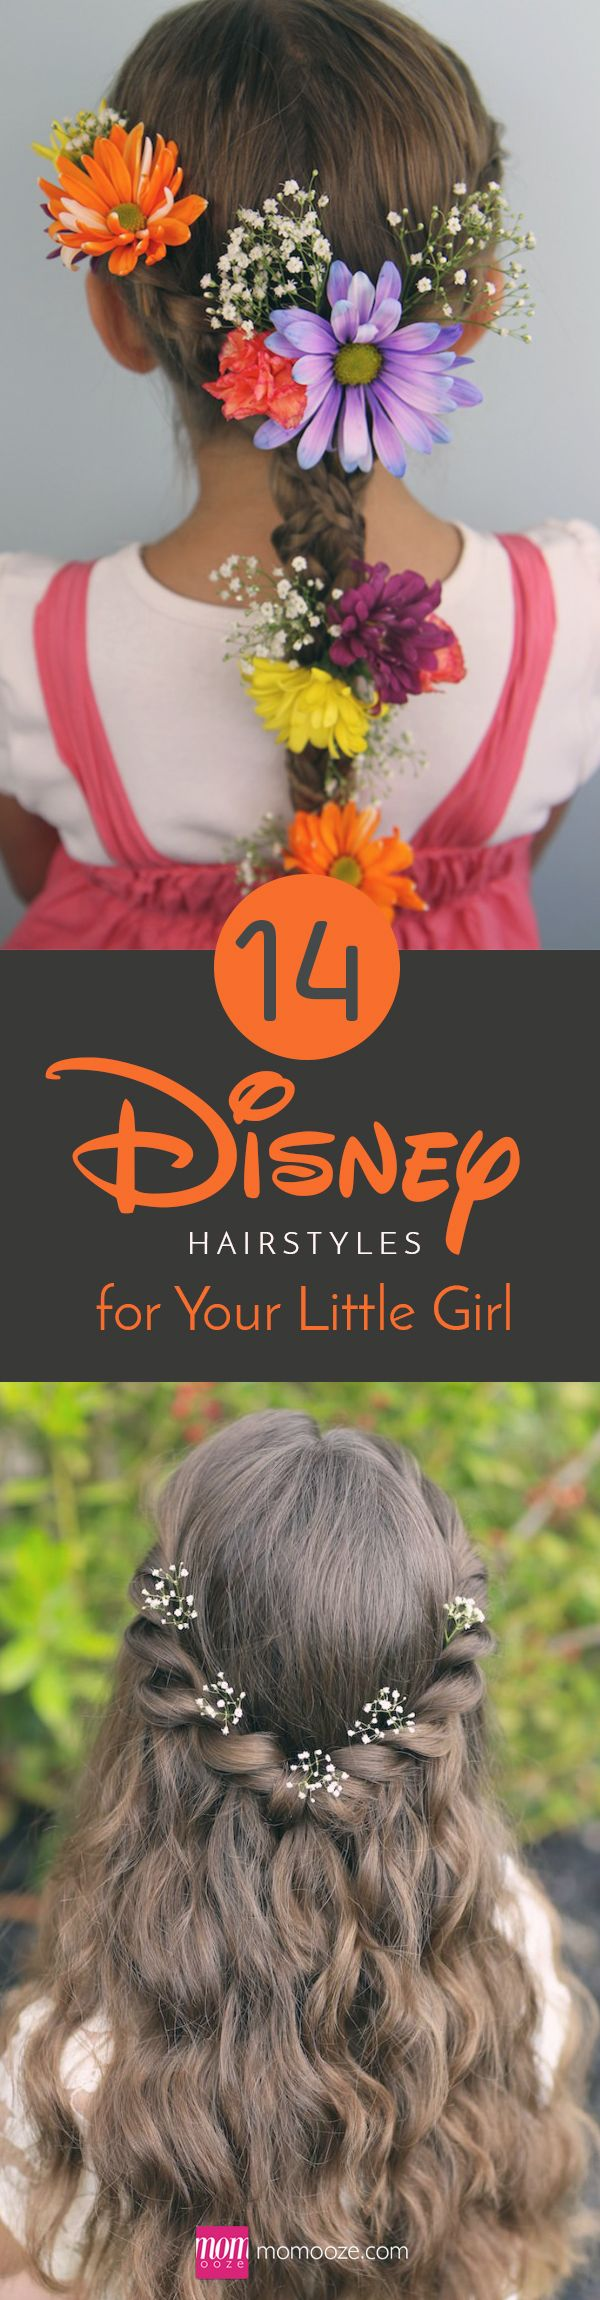 14 Disney Hairstyles for Your Little Girl to Channel Her Inner Princess